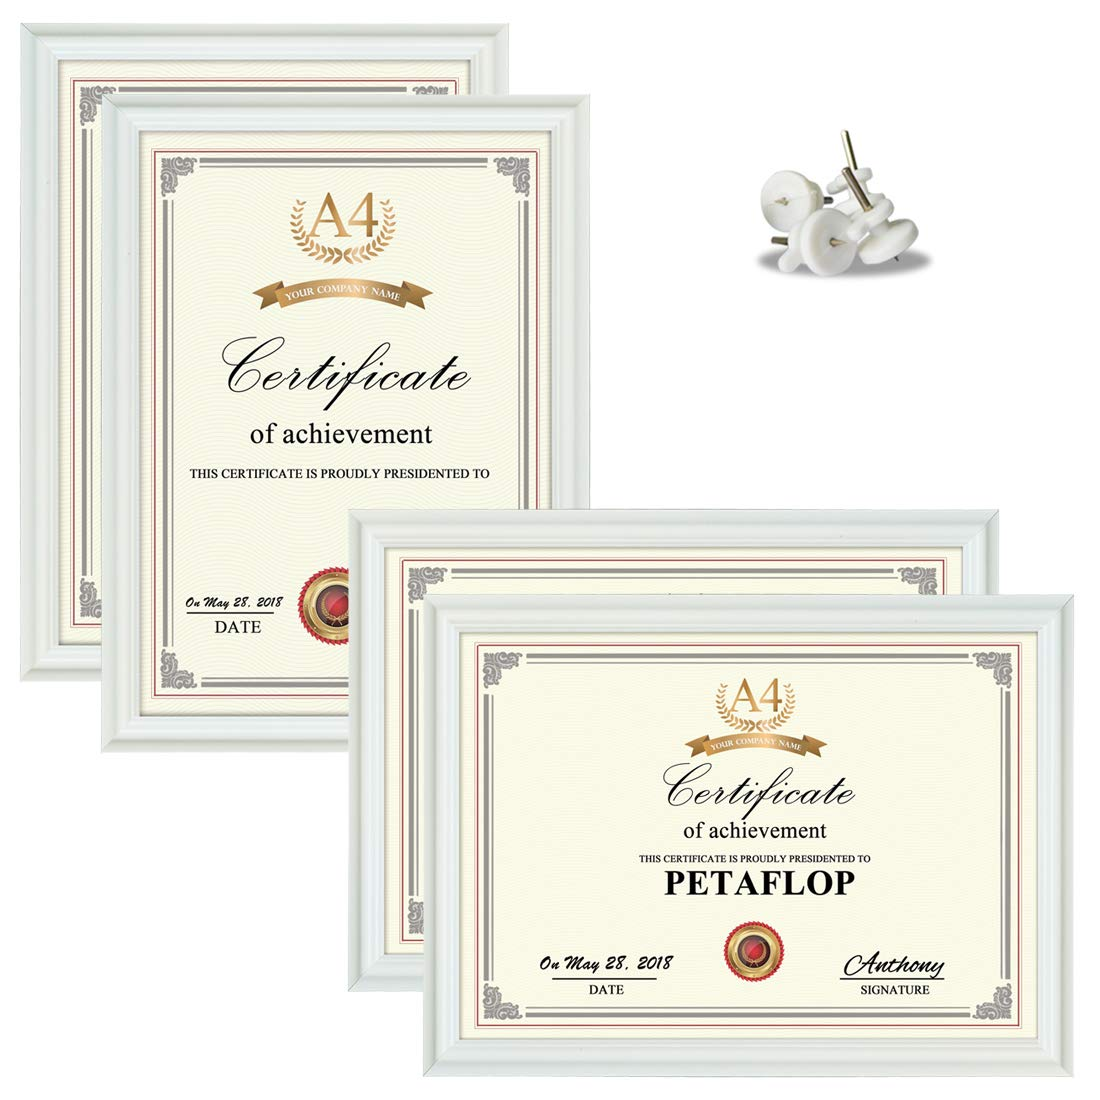 PETAFLOP A4 White Frames 21 x 29.7 cm Frame for Certificate Document Display 8 1/4 x 11 3/4 Inch Glass Covering, Set of 4